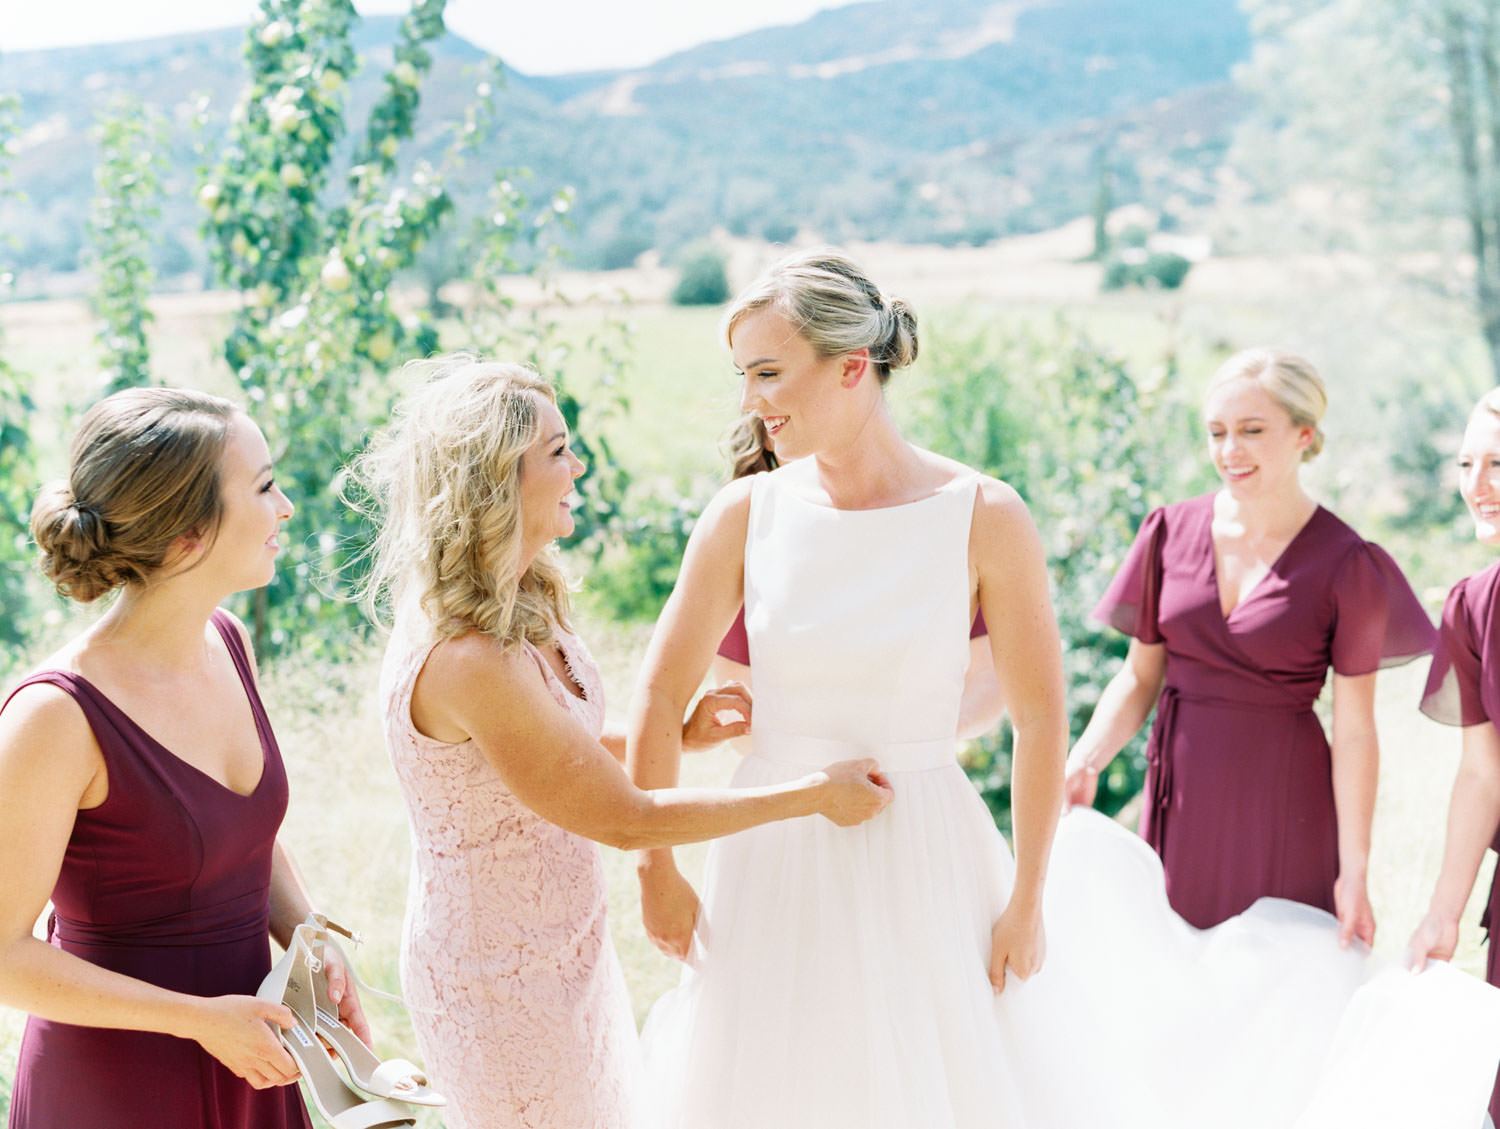 Mother of the bride helping the bride into her classic Mikaella Bridal gown with bridesmaids in deep wine gowns by Show Me Your Mumu. Full Belly Farm on Martha Stewart Weddings by film photographer Cavin Elizabeth Photography